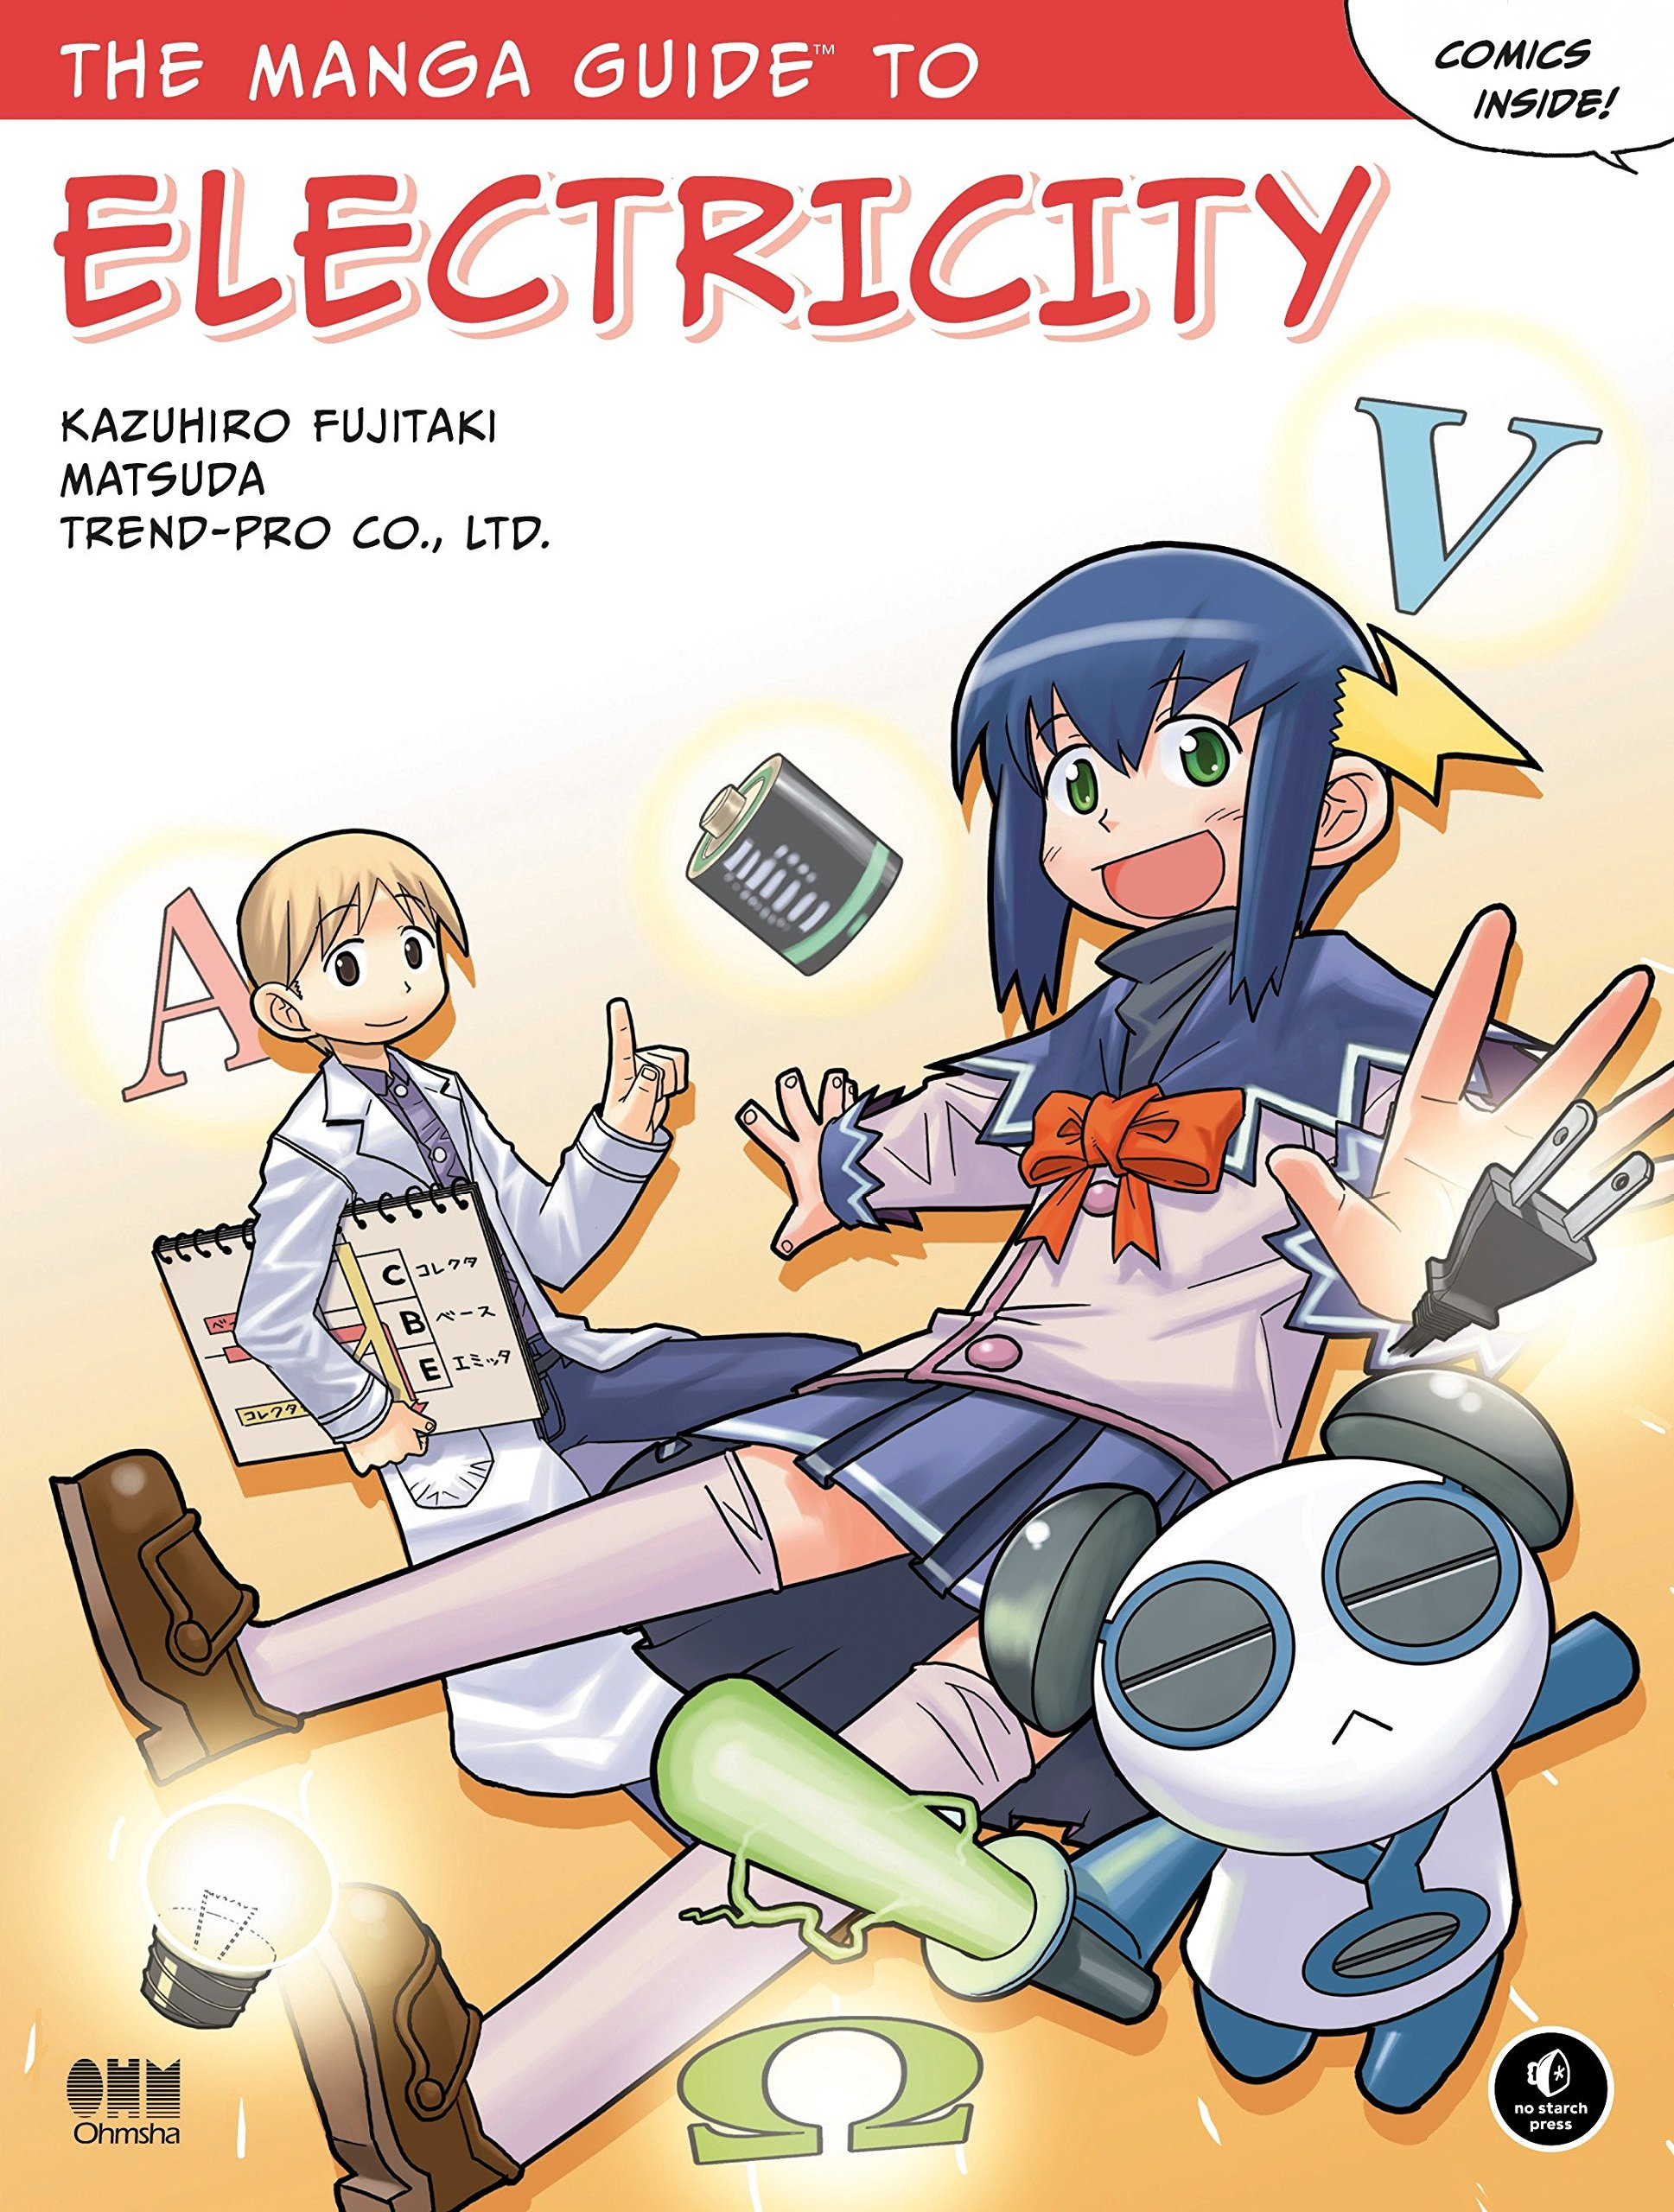 The Manga Guide to Electricity by No Starch Press (Image #1)